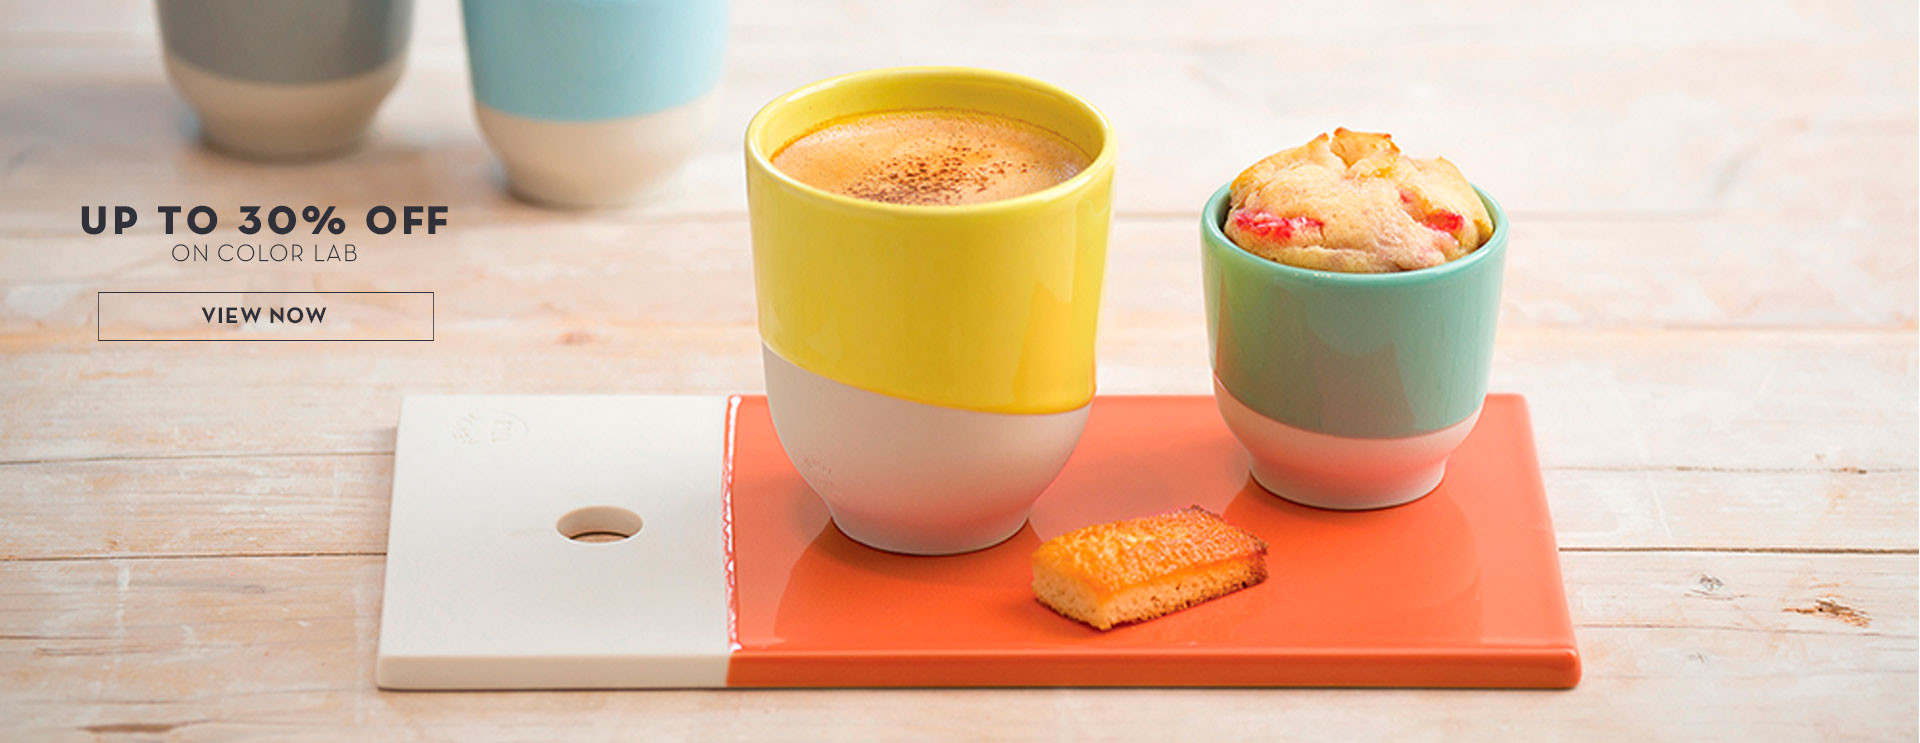 COLOR LAB ESPRESSO CUPS